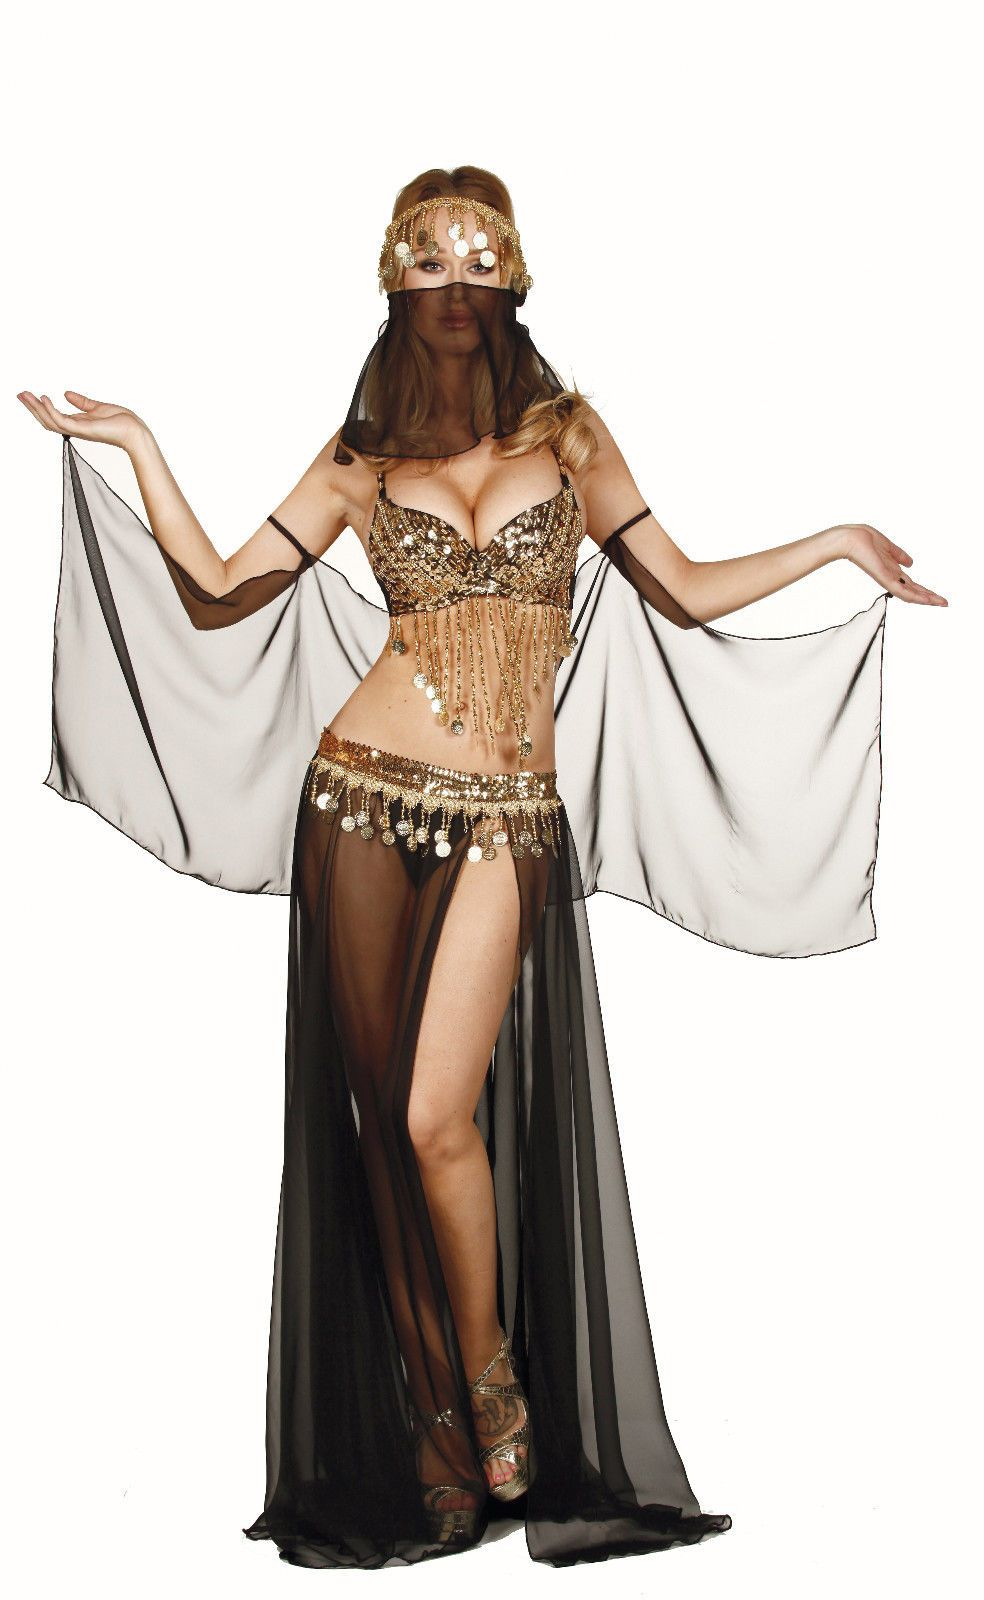 Belly dancing outfit | belly dancing clothes | belly ...